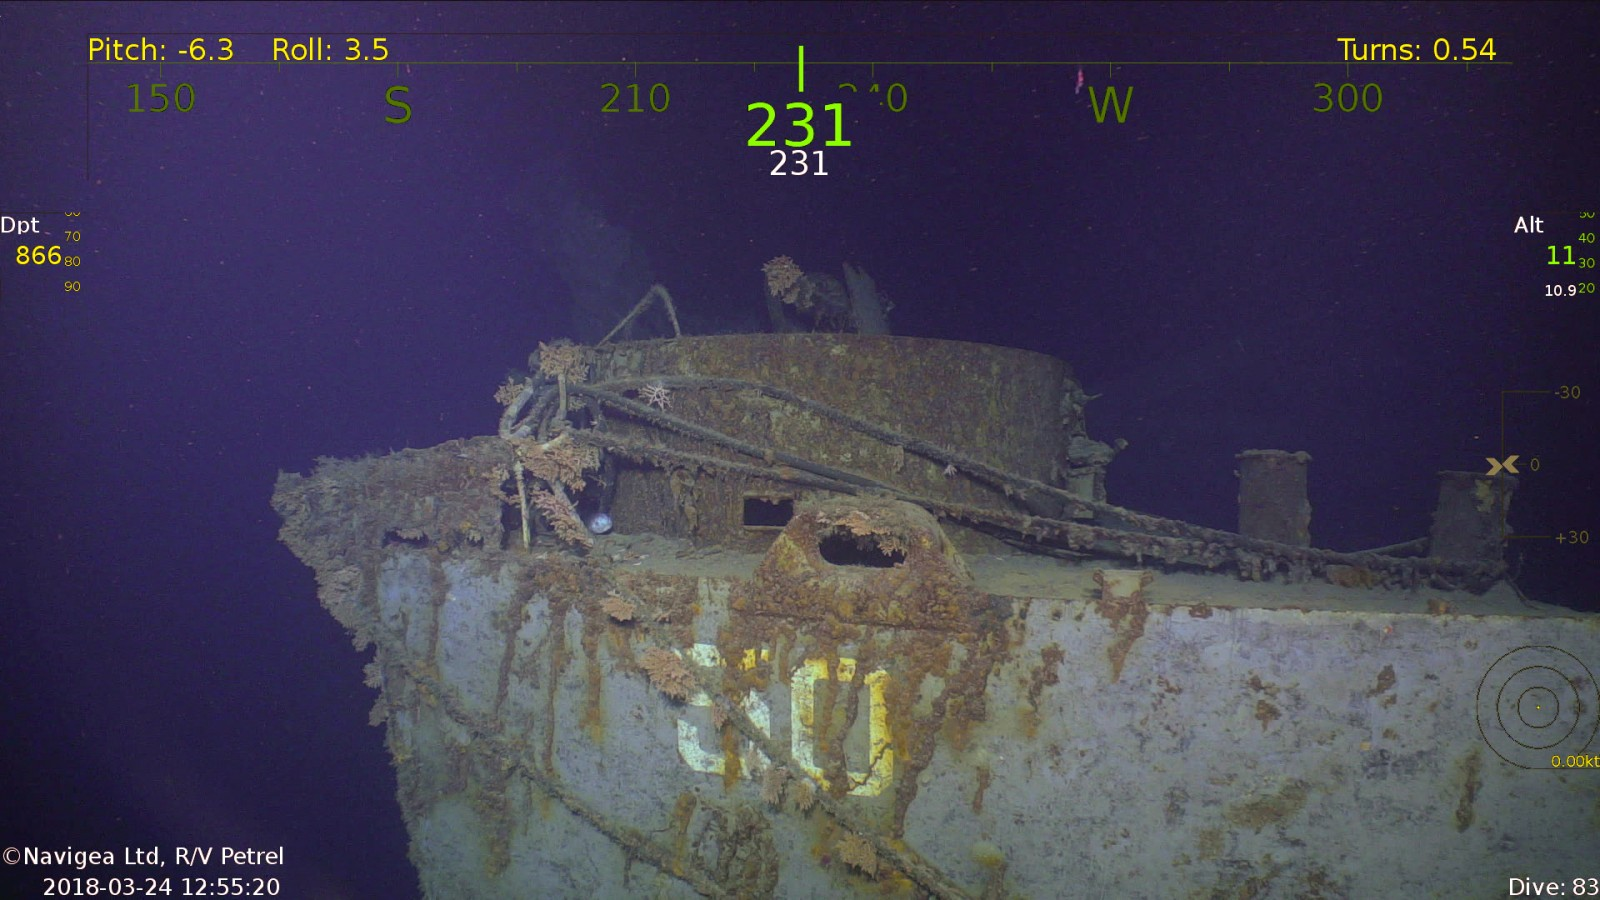 R/V Petrel finds another WWII ship | The Triton